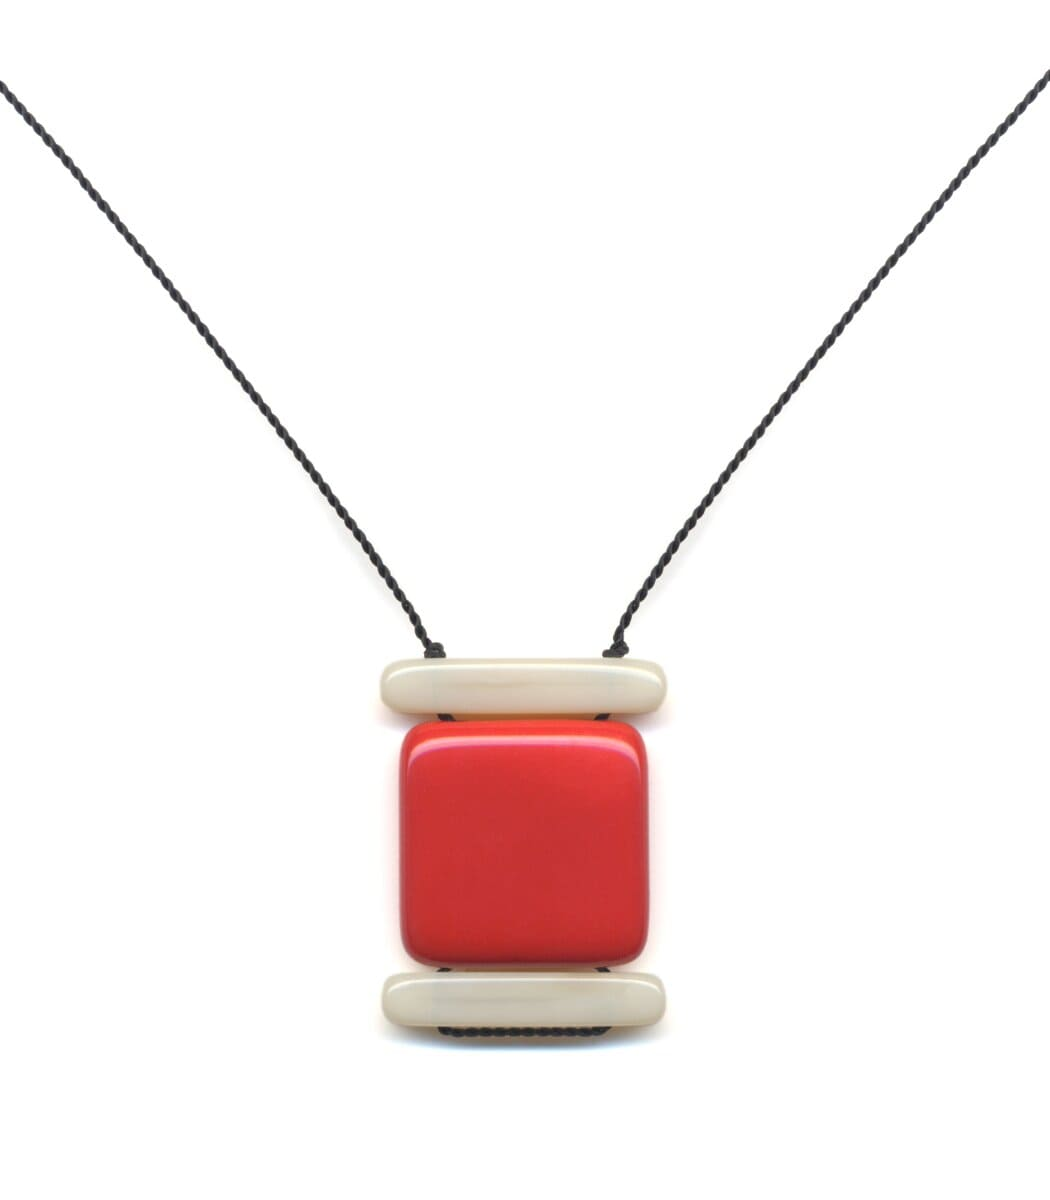 Irk Jewelry I. Ronni Kappos N1887 Red Layer Necklace